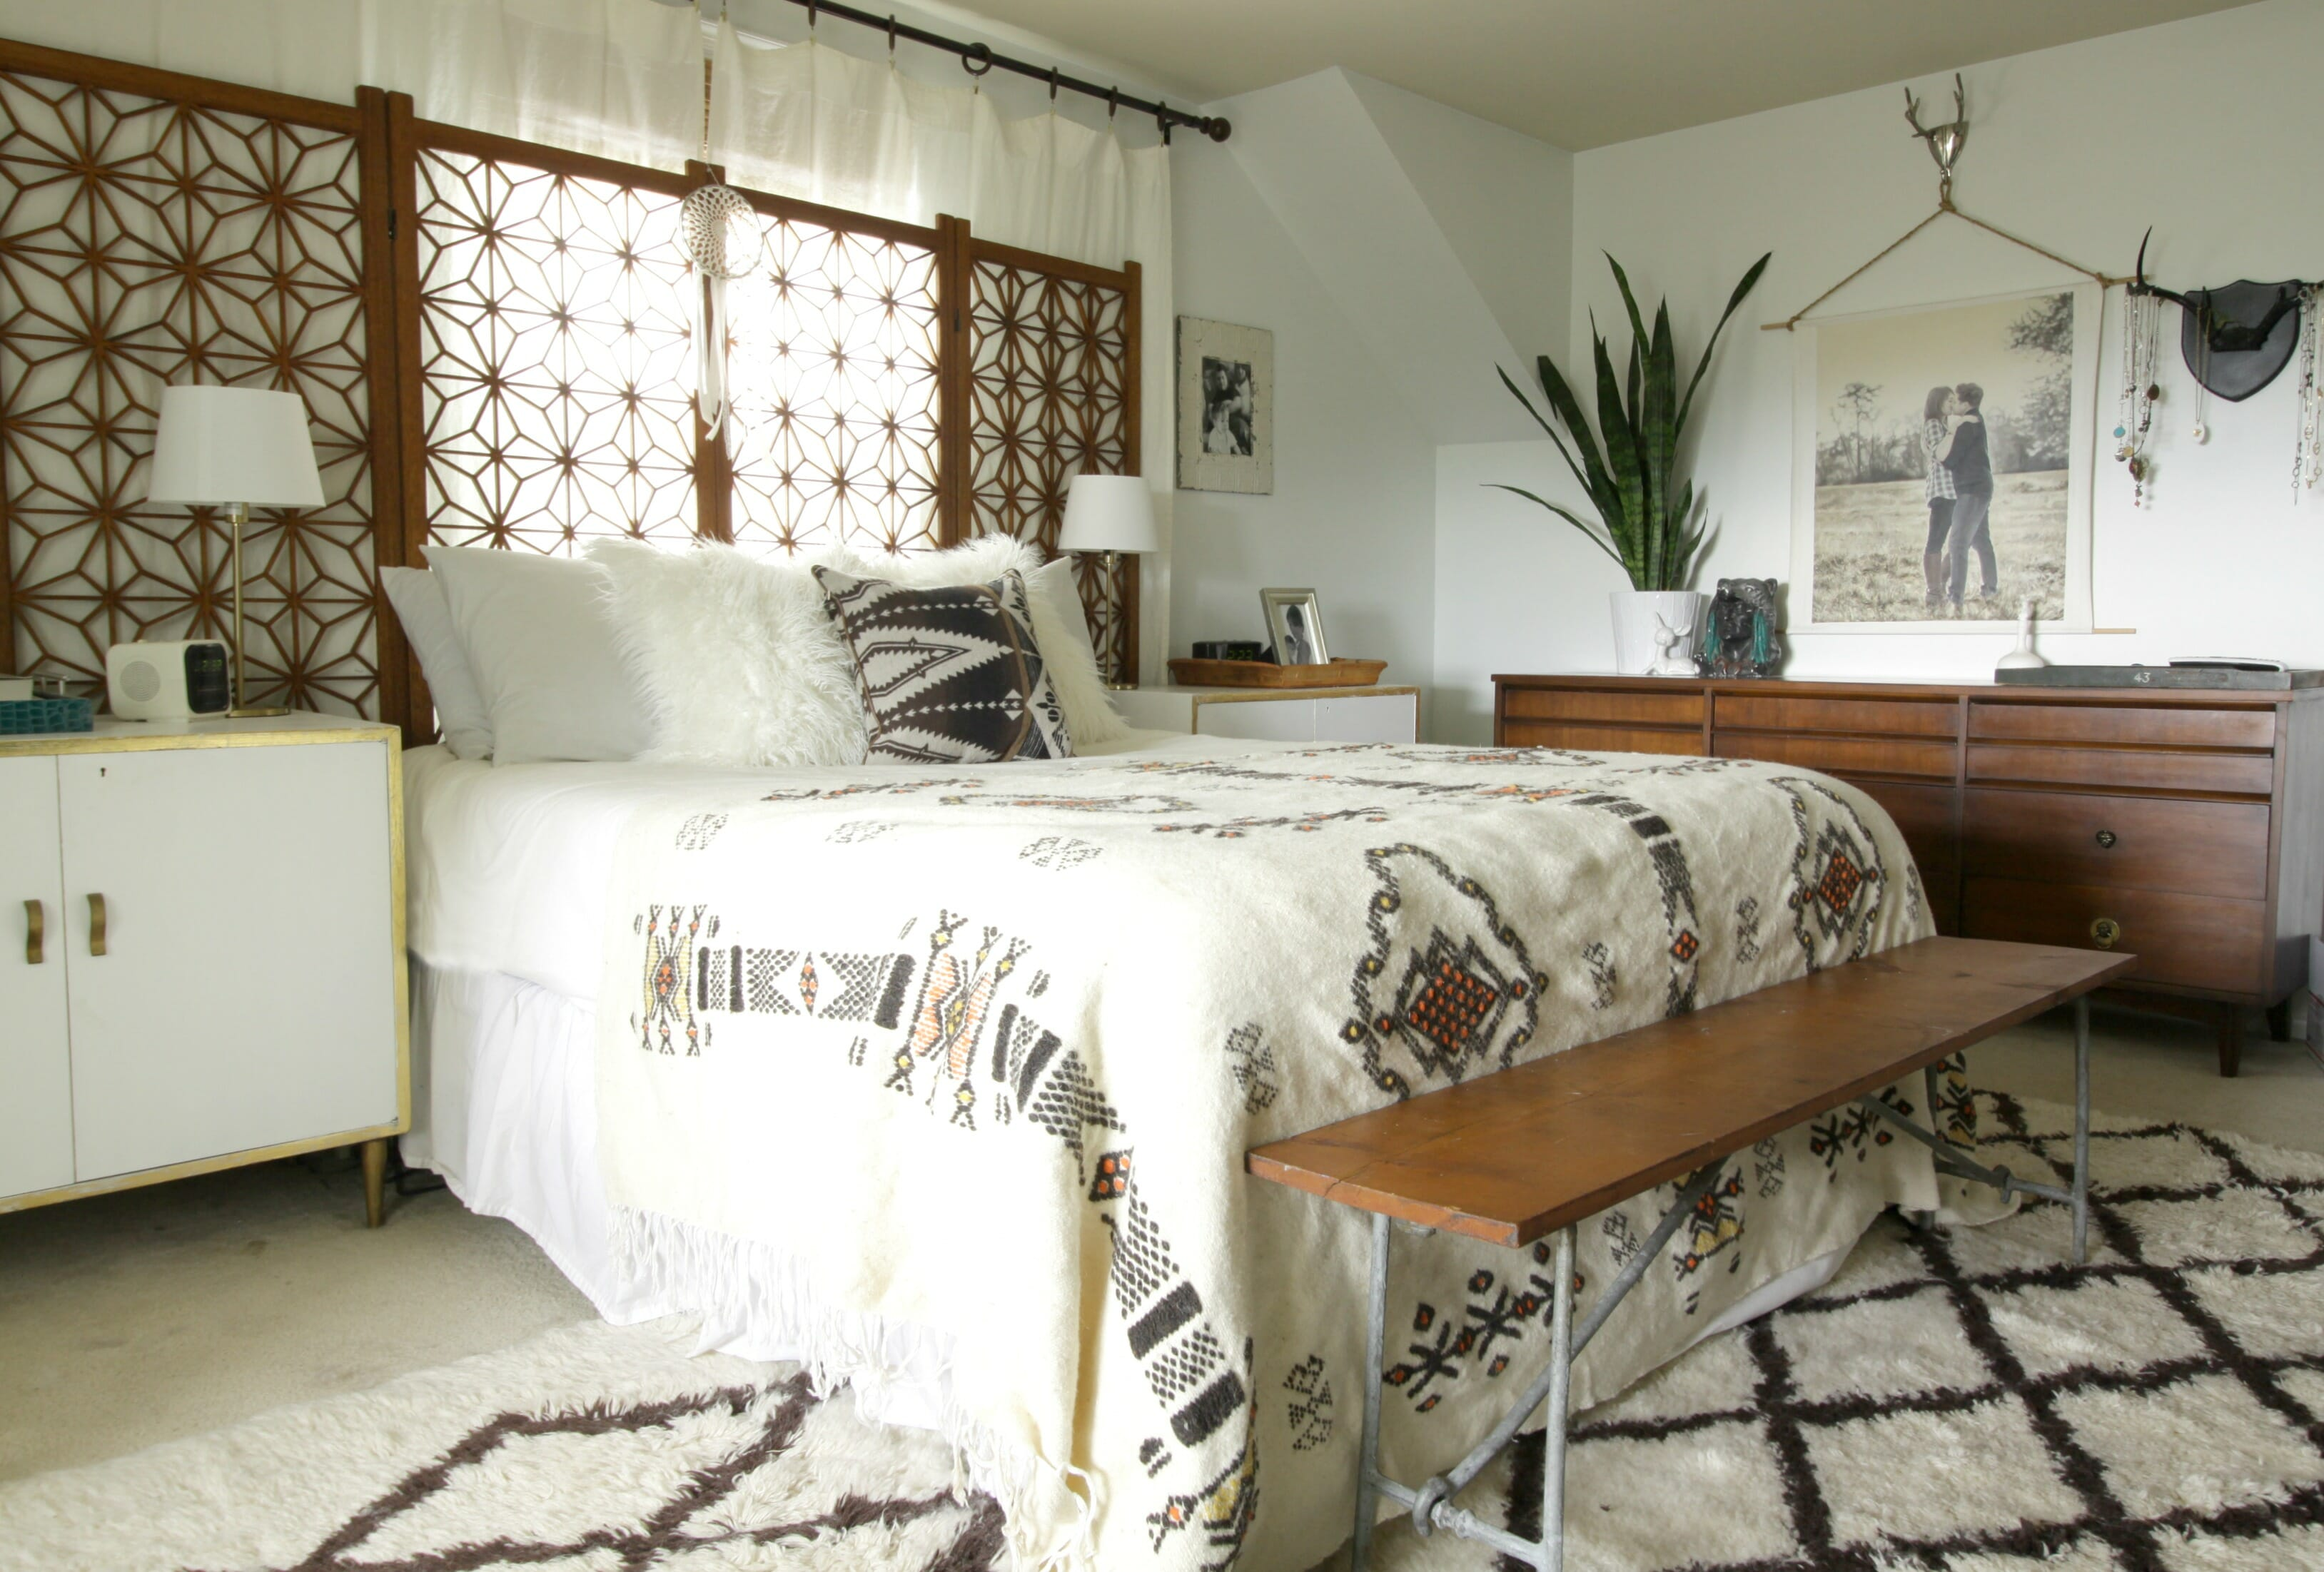 thrift score thursday boho bedding cassie bustamante 16240 | vintage modern boho bedroom